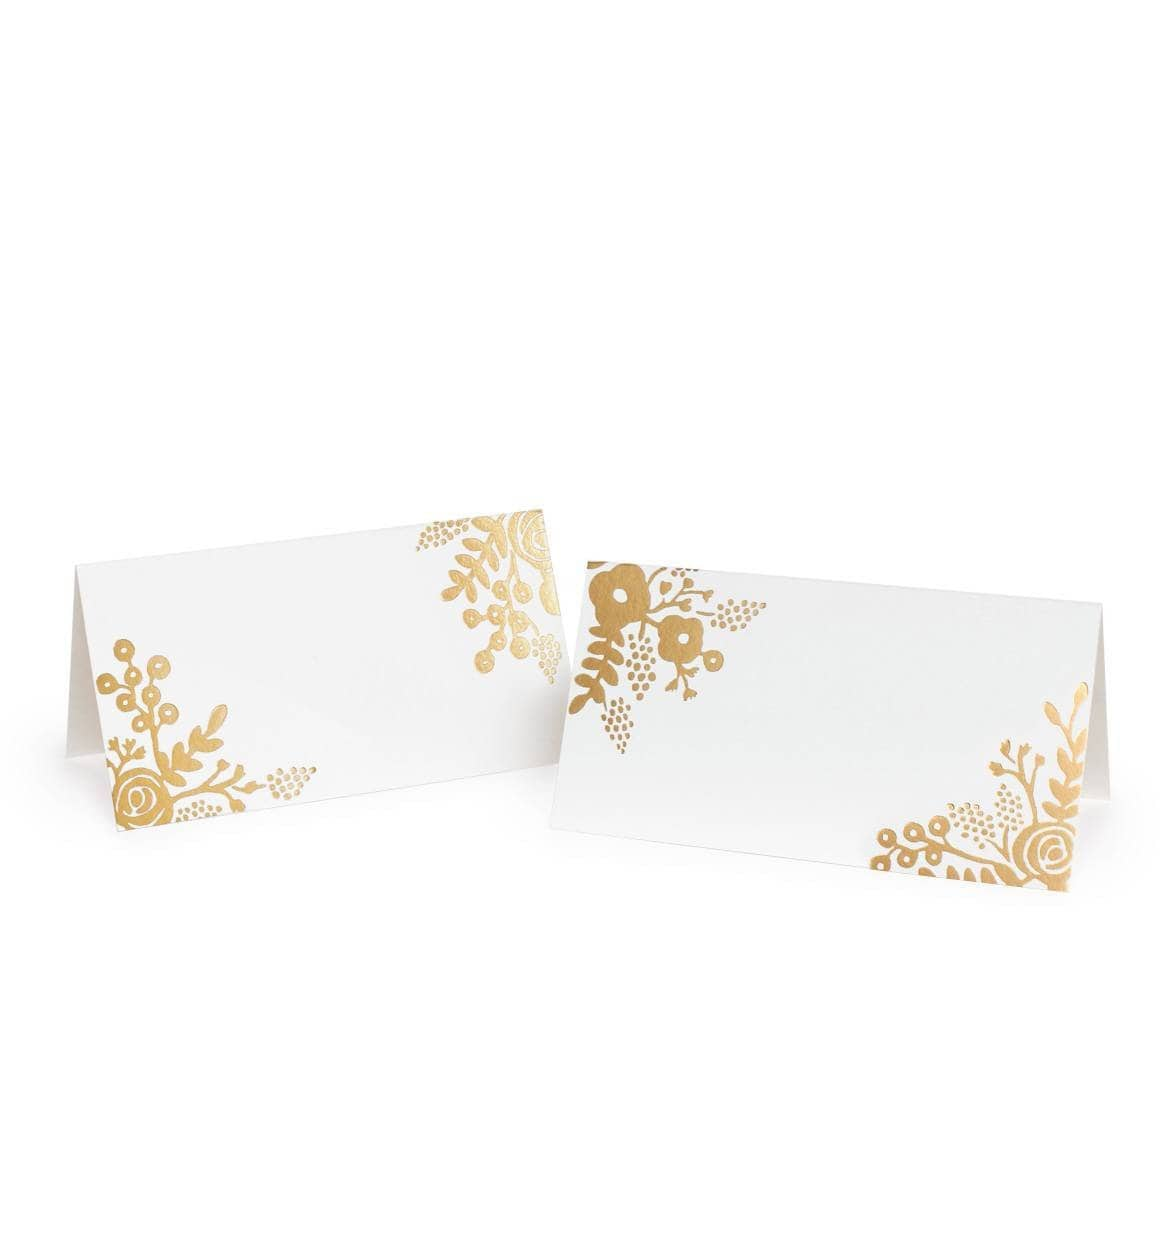 GOLD LACE Place Cards by Rifle Paper Co. Rifle Paper Co Cards